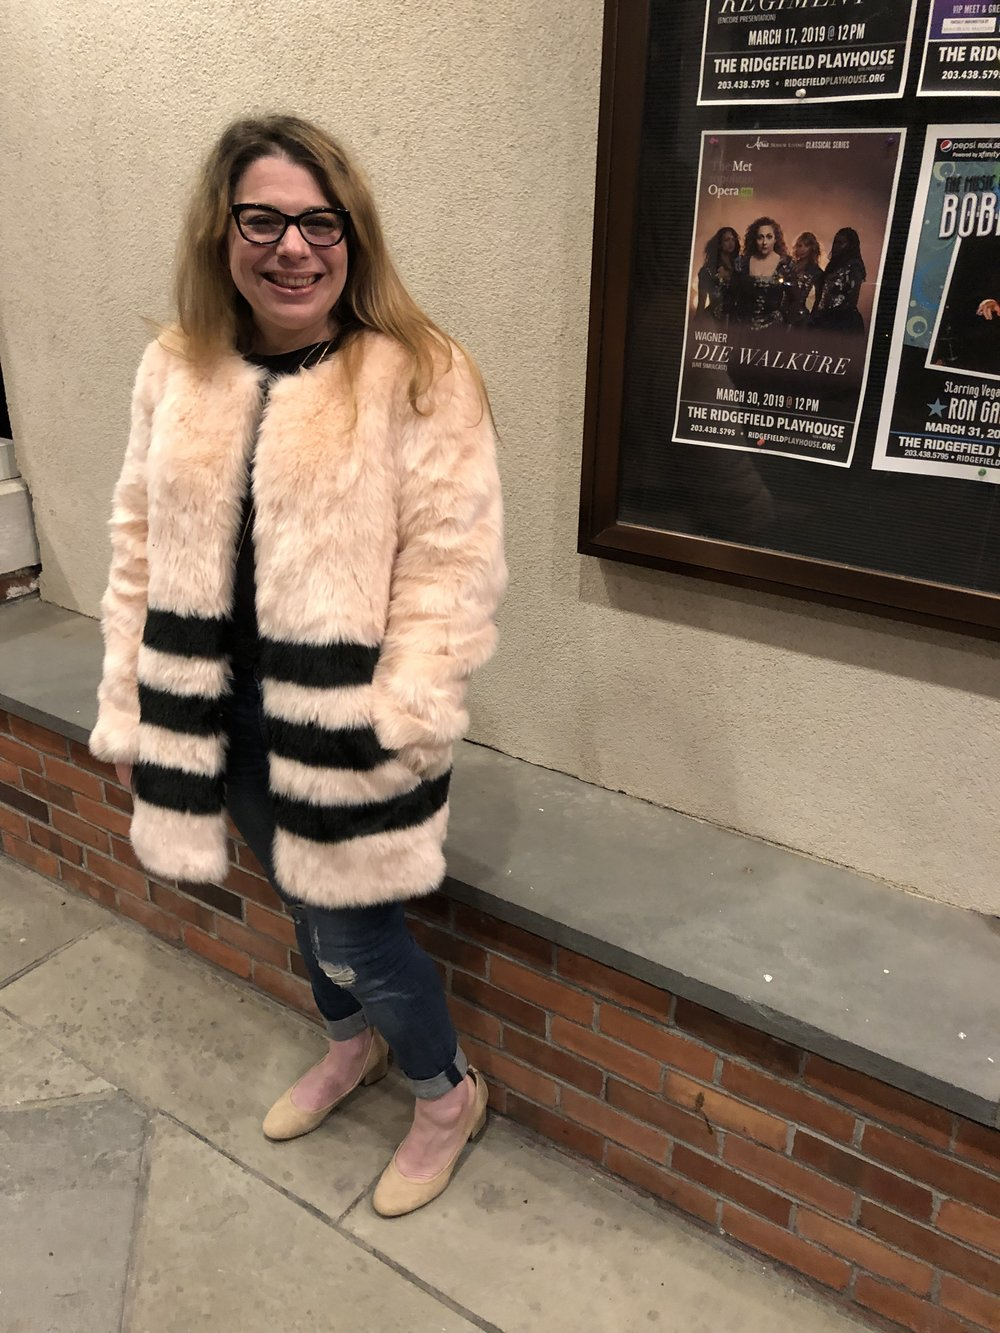 Me in 2019 . . . feeling clear, focused and ready. Also never would have rocked this coat without the confidence I know have!